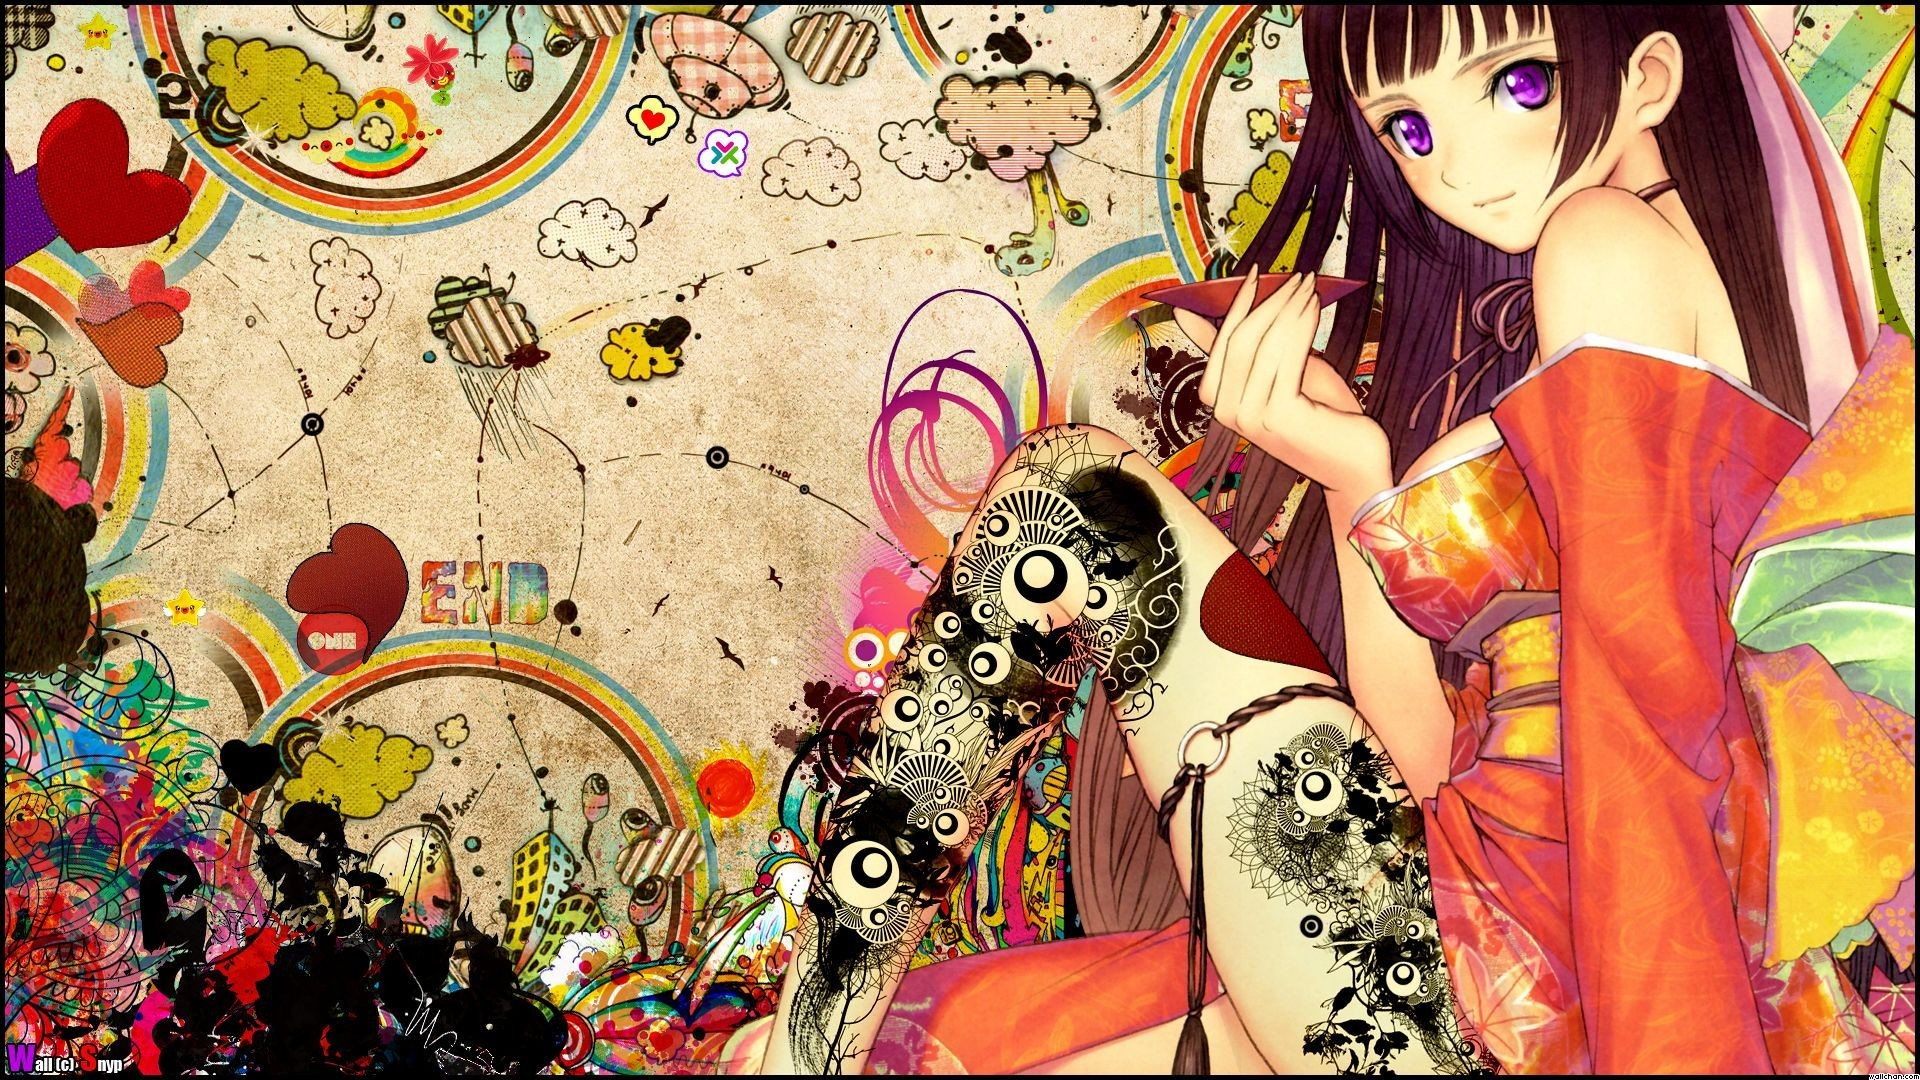 Tattoo Desktop Wallpaper Posted By Sarah Sellers